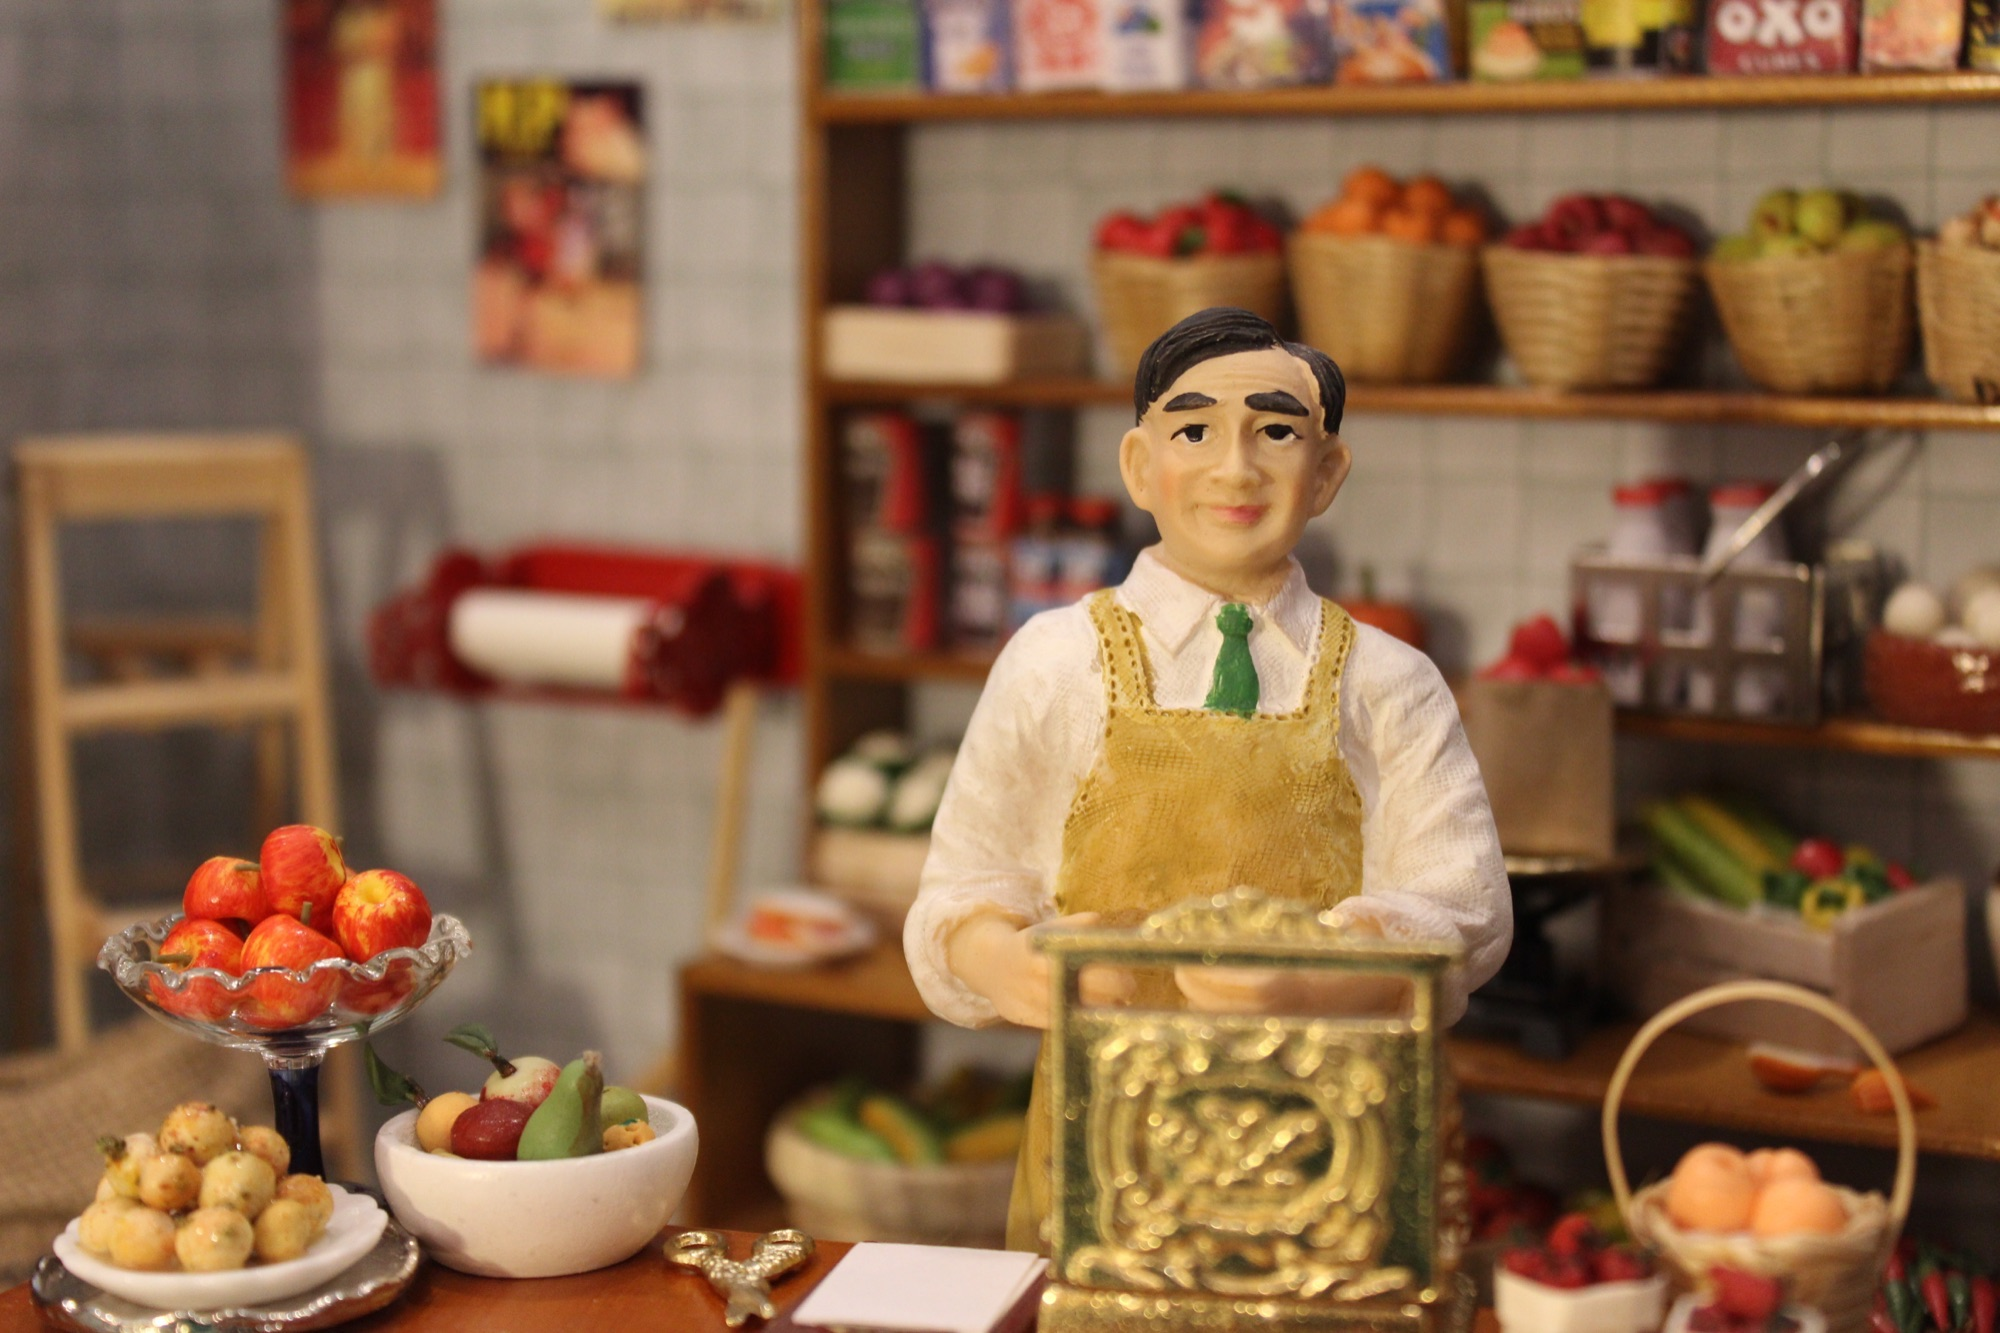 12th Scale Resin Doll Shopkeeper